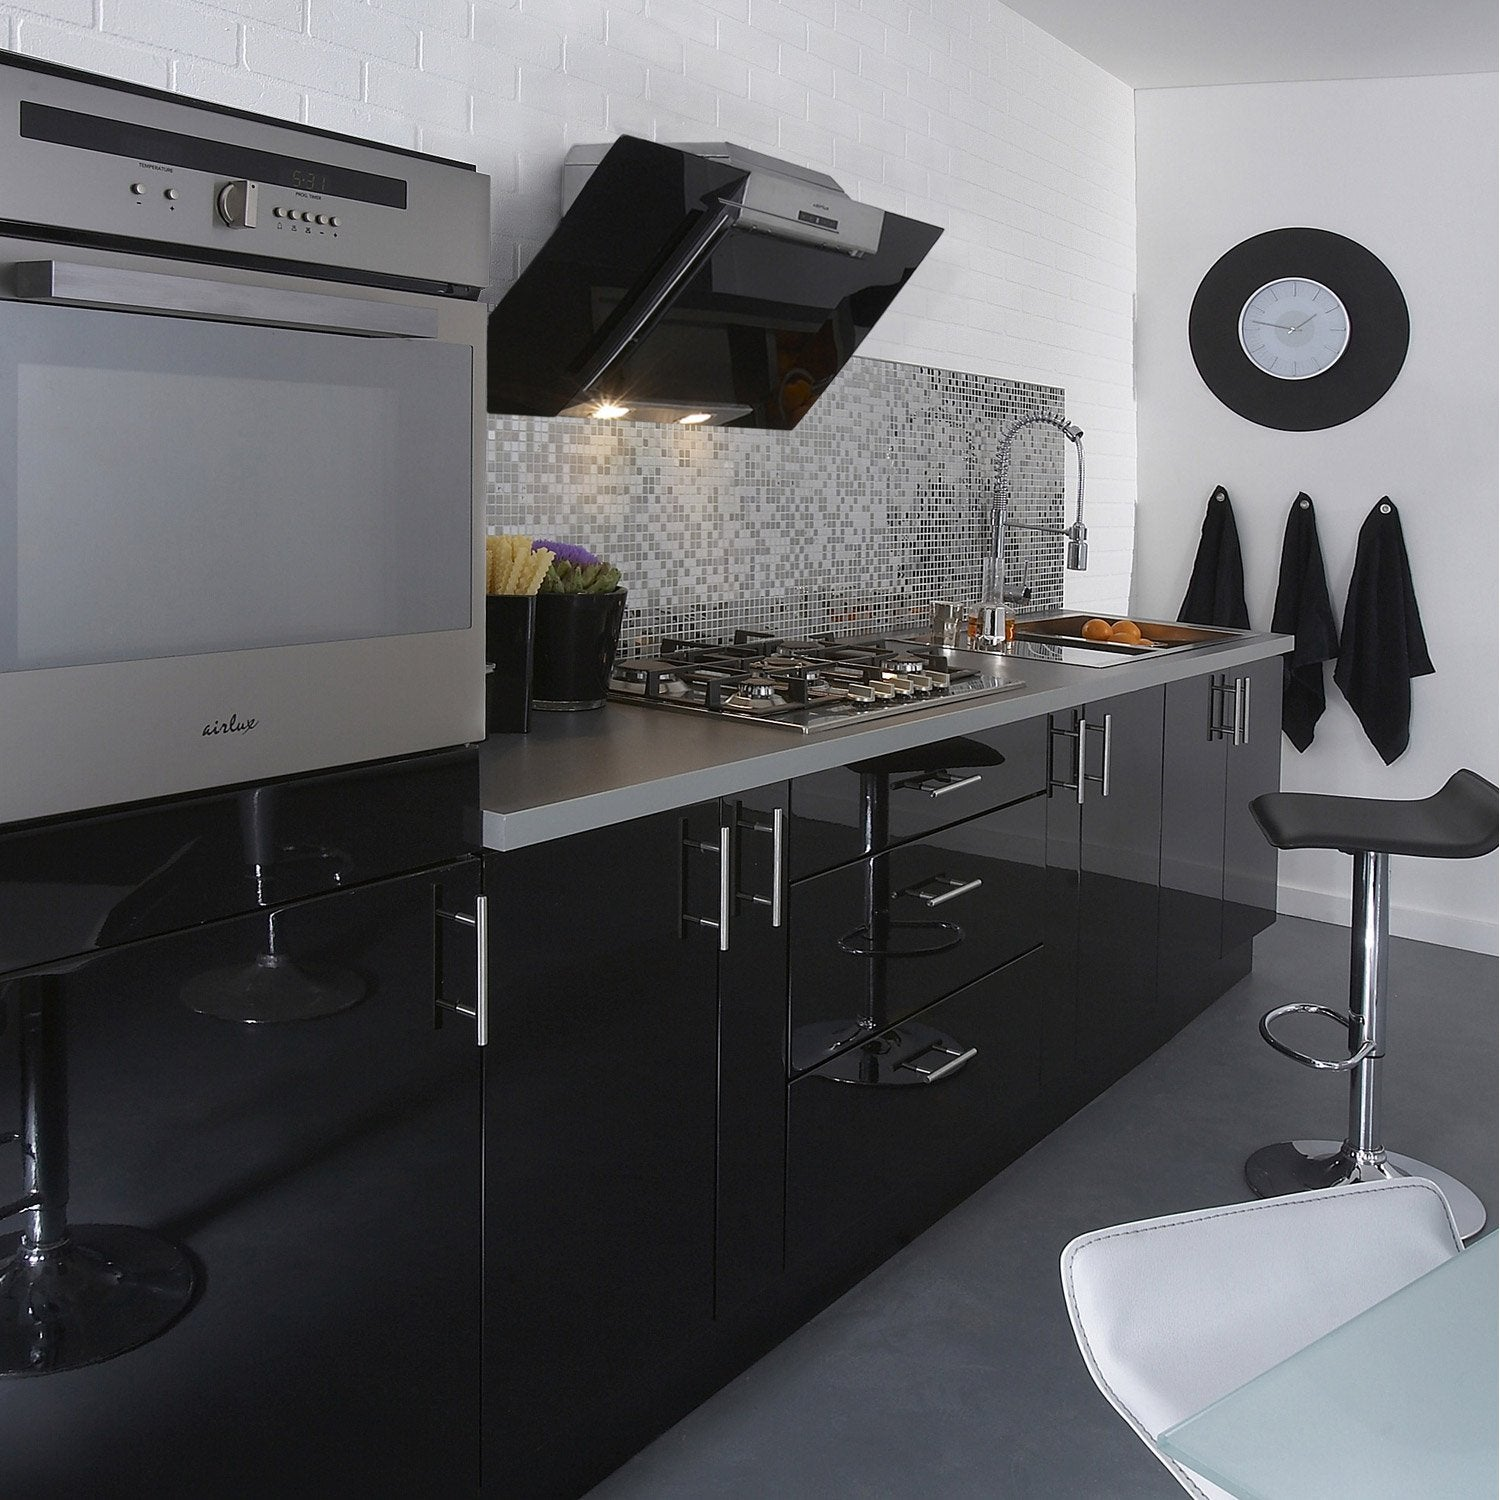 Meuble de cuisine noir delinia rio leroy merlin for Portes elements cuisine leroy merlin